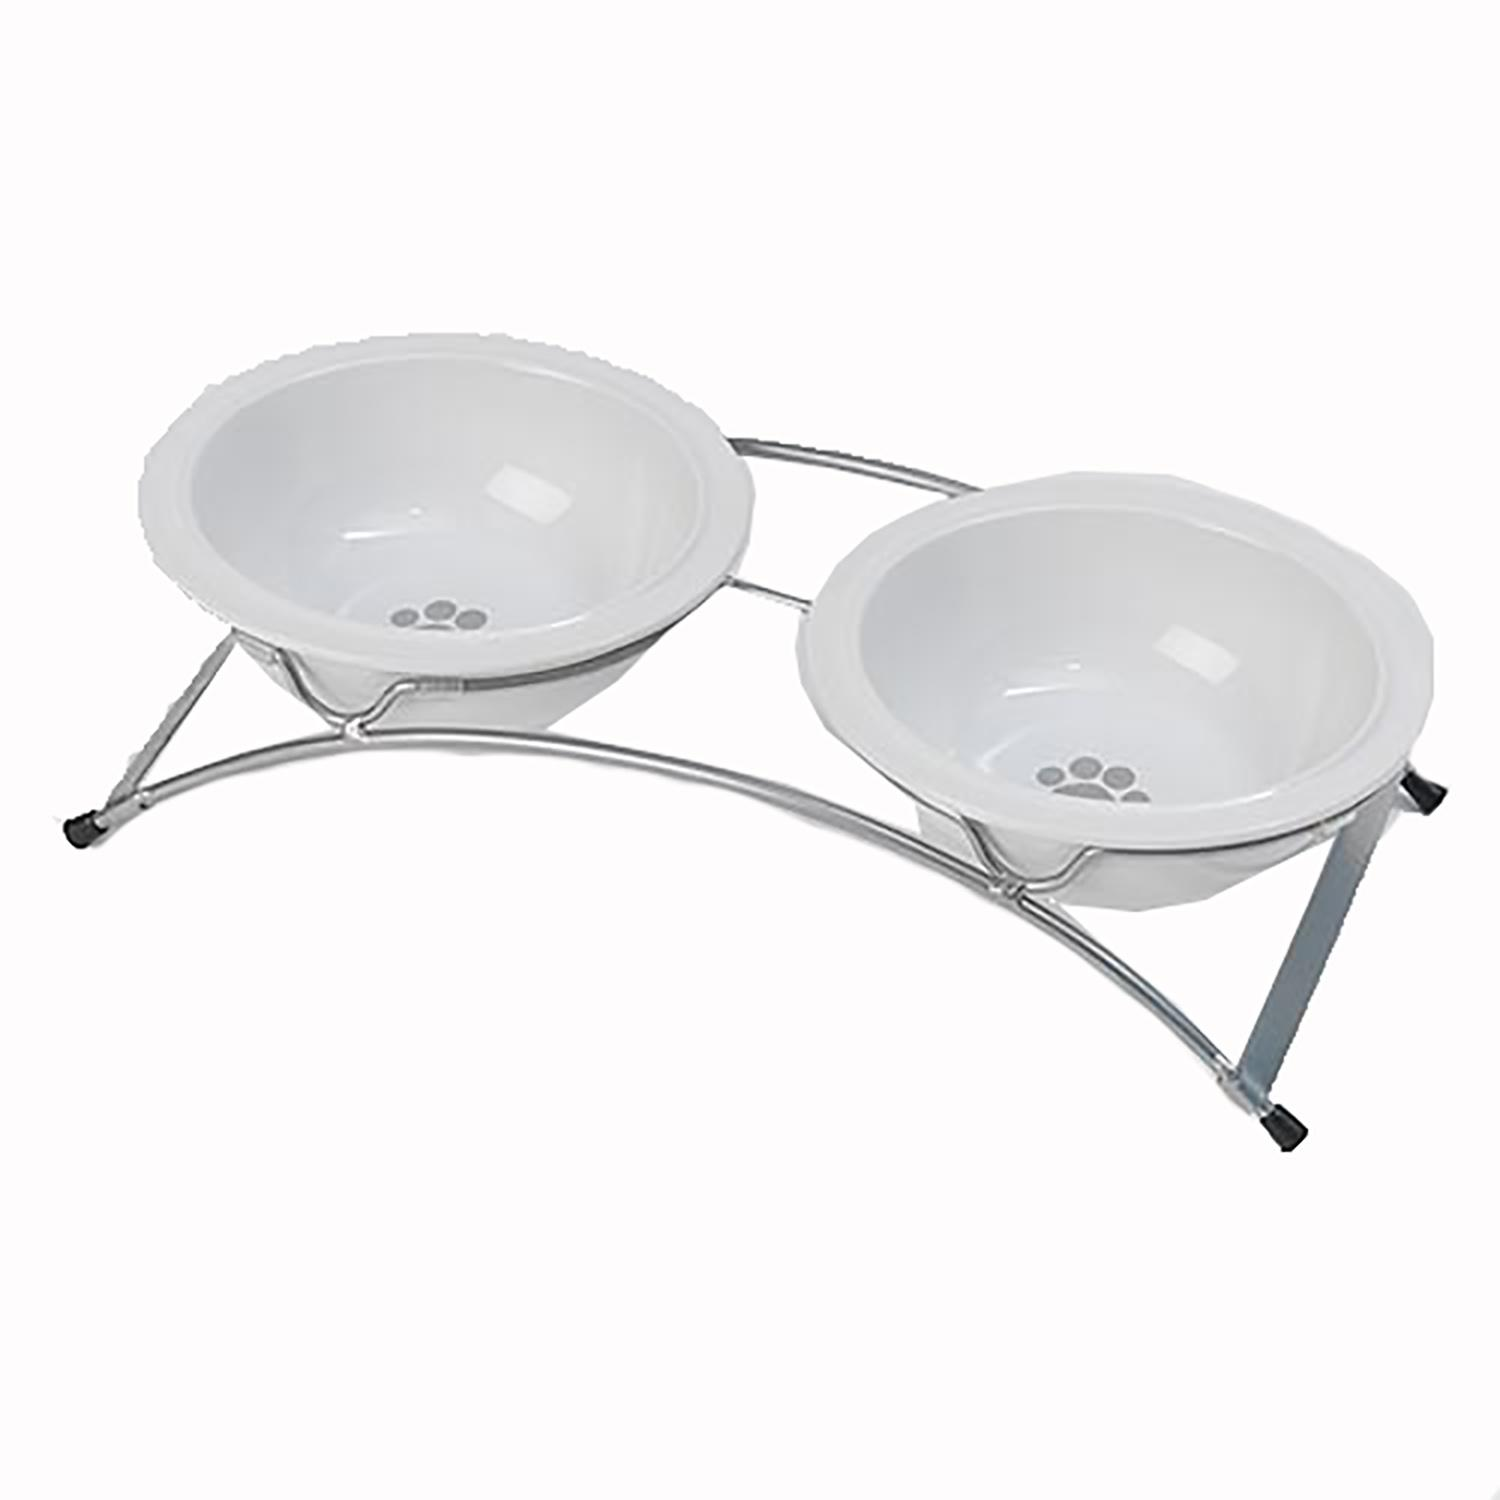 Buddy's Best Feeder Pet Diner Set - White and Silver